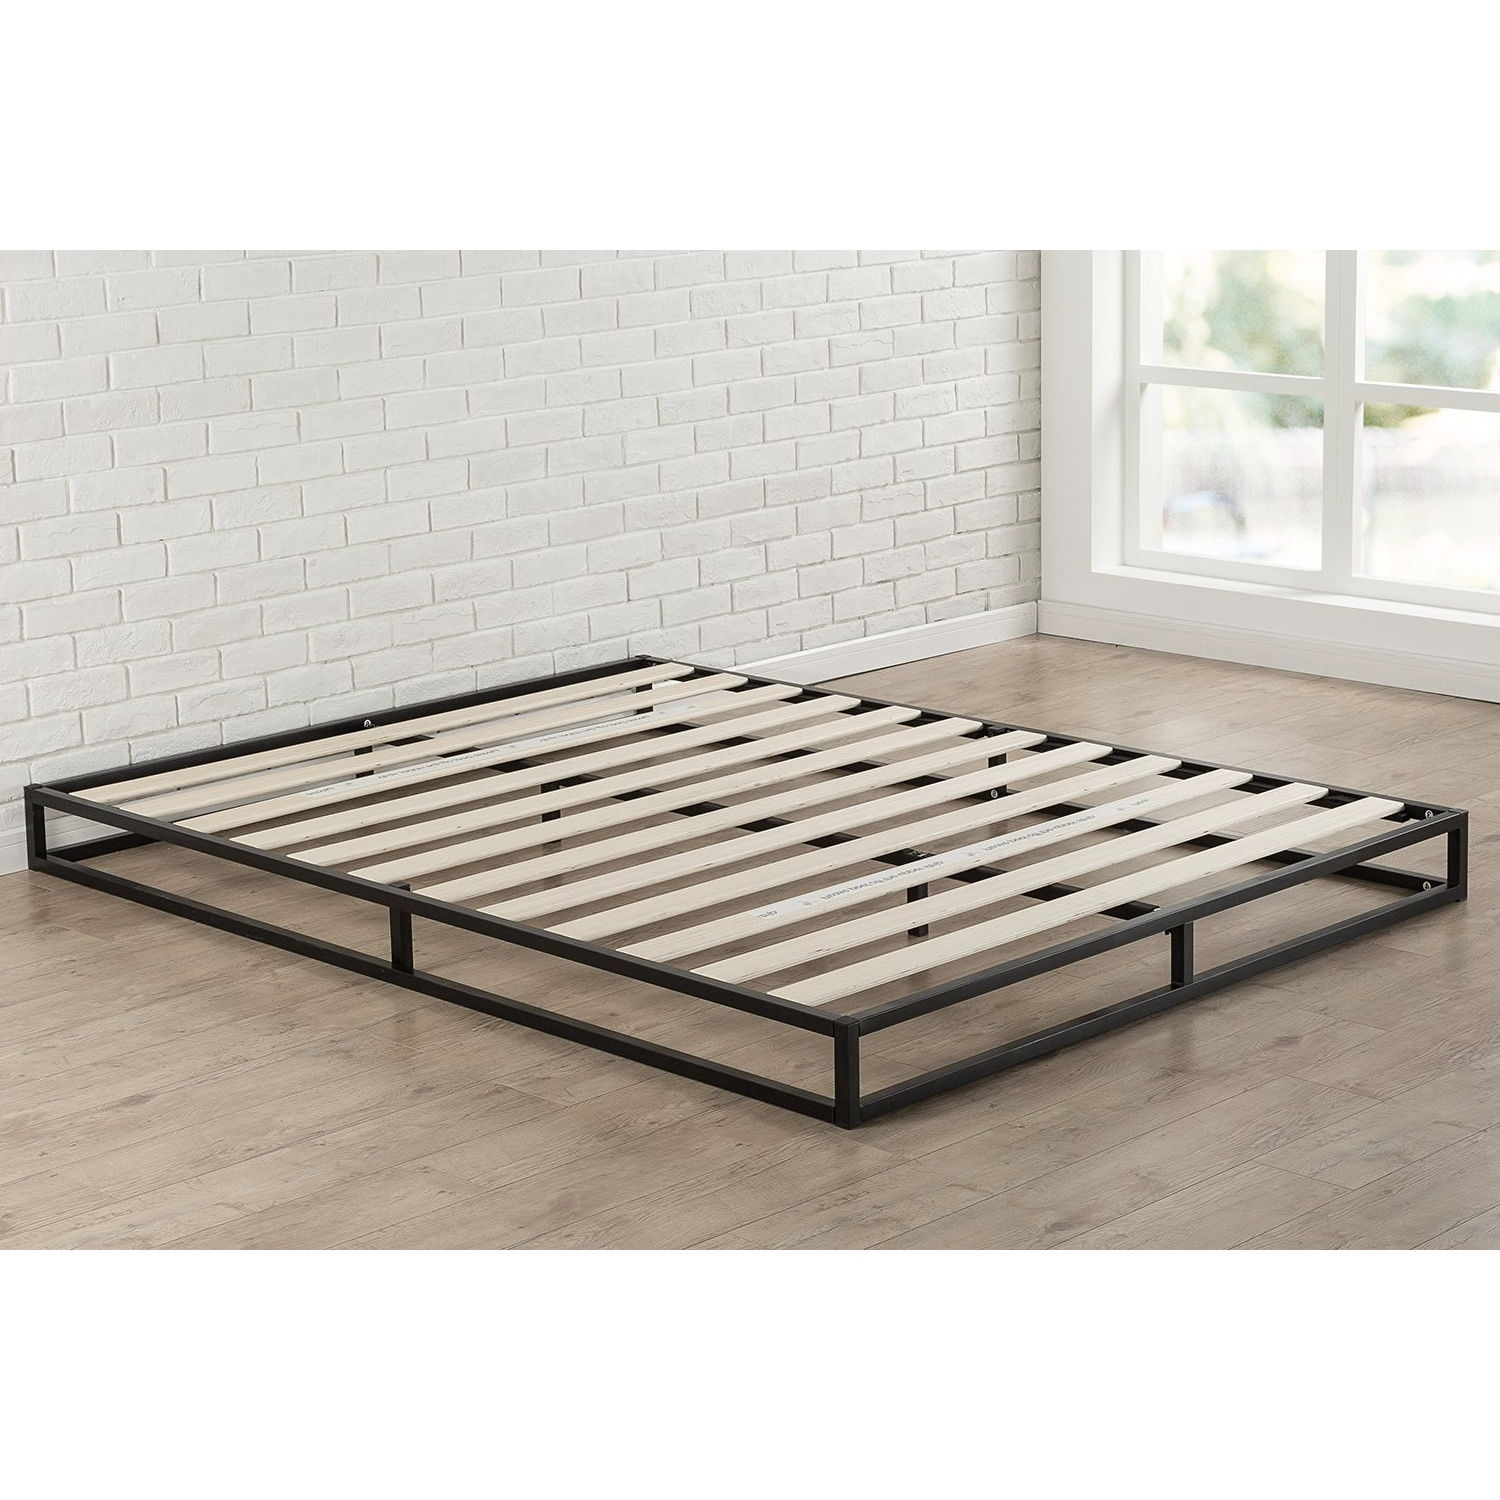 twin 6 inch low profile platform bed frame with modern wood slats mattress support system - Low Profile Twin Bed Frame